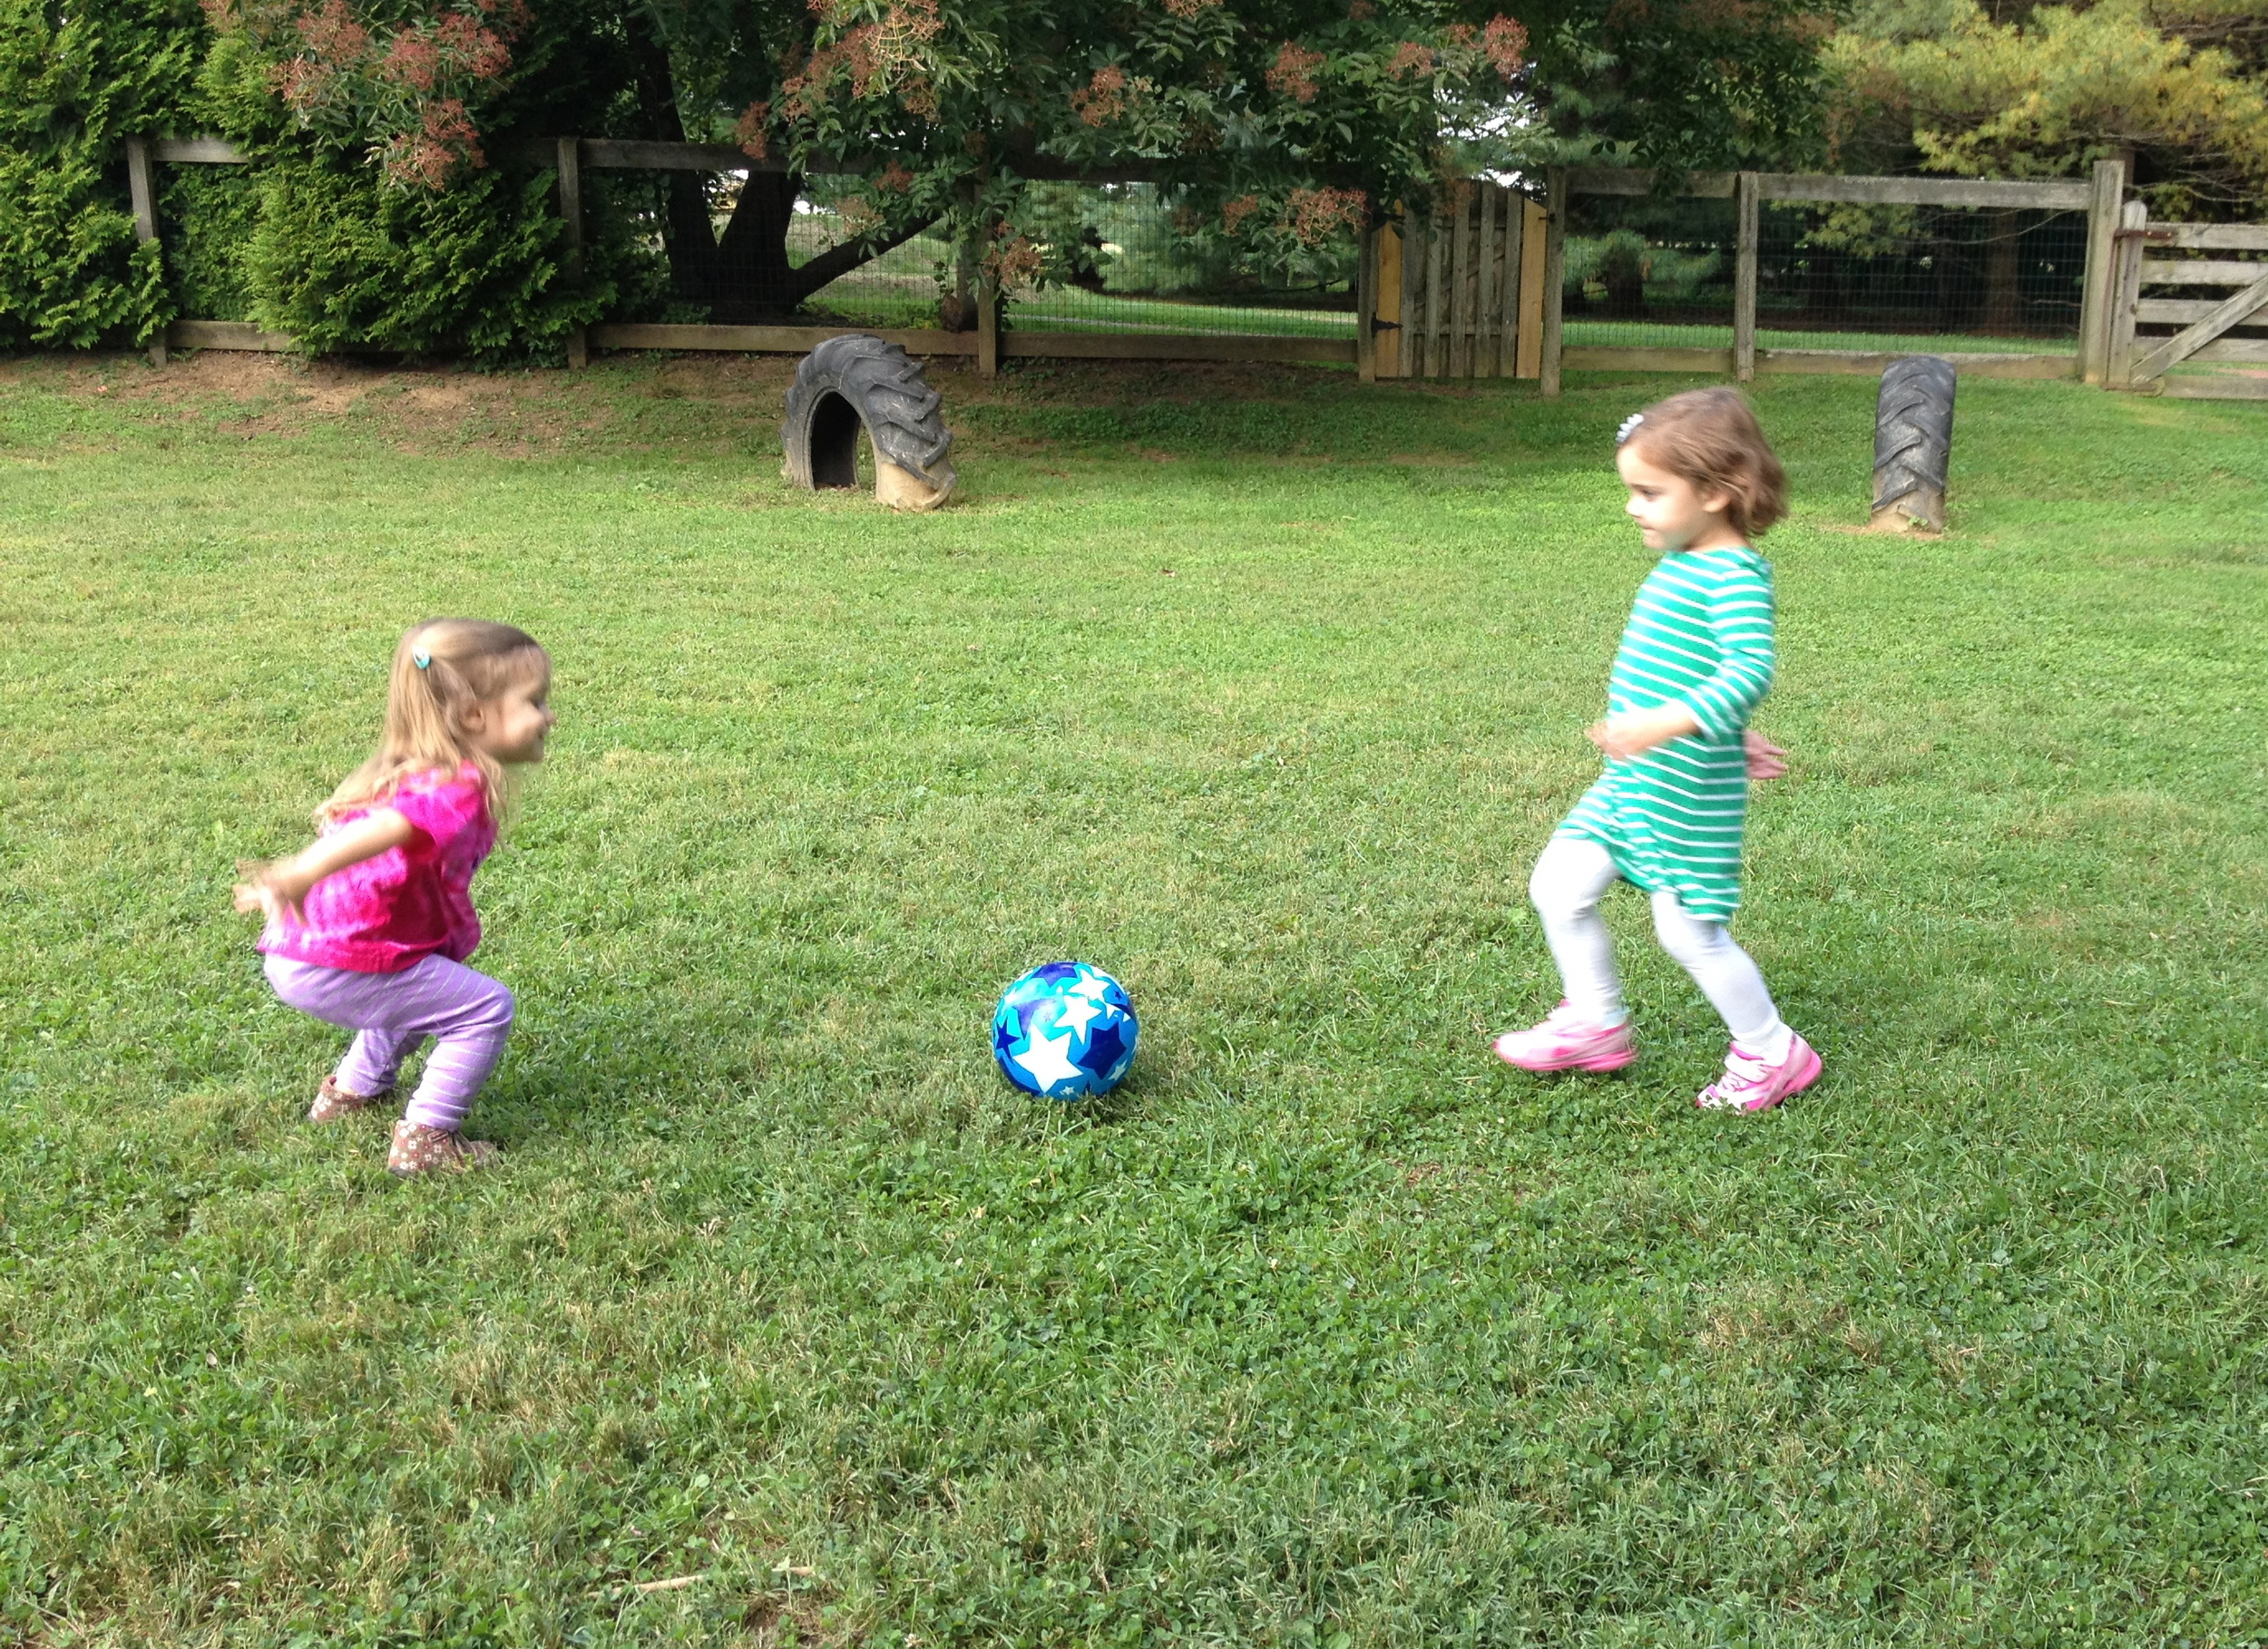 Kicking the ball back and forth